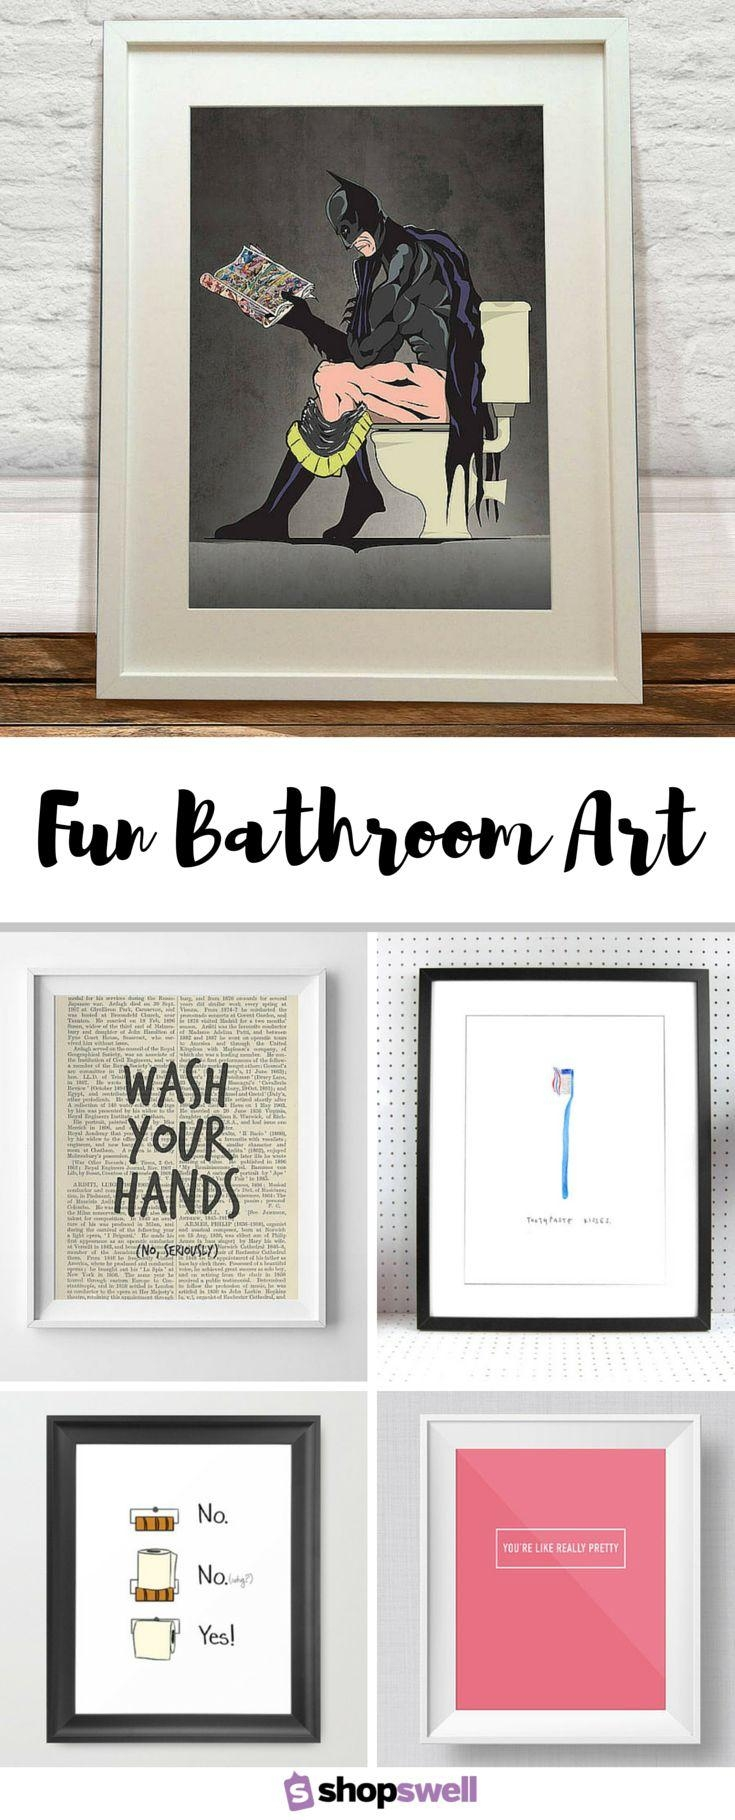 20 Collection of Art for Bathrooms Walls | Wall Art Ideas on Pinterest Wall Decor  id=41214